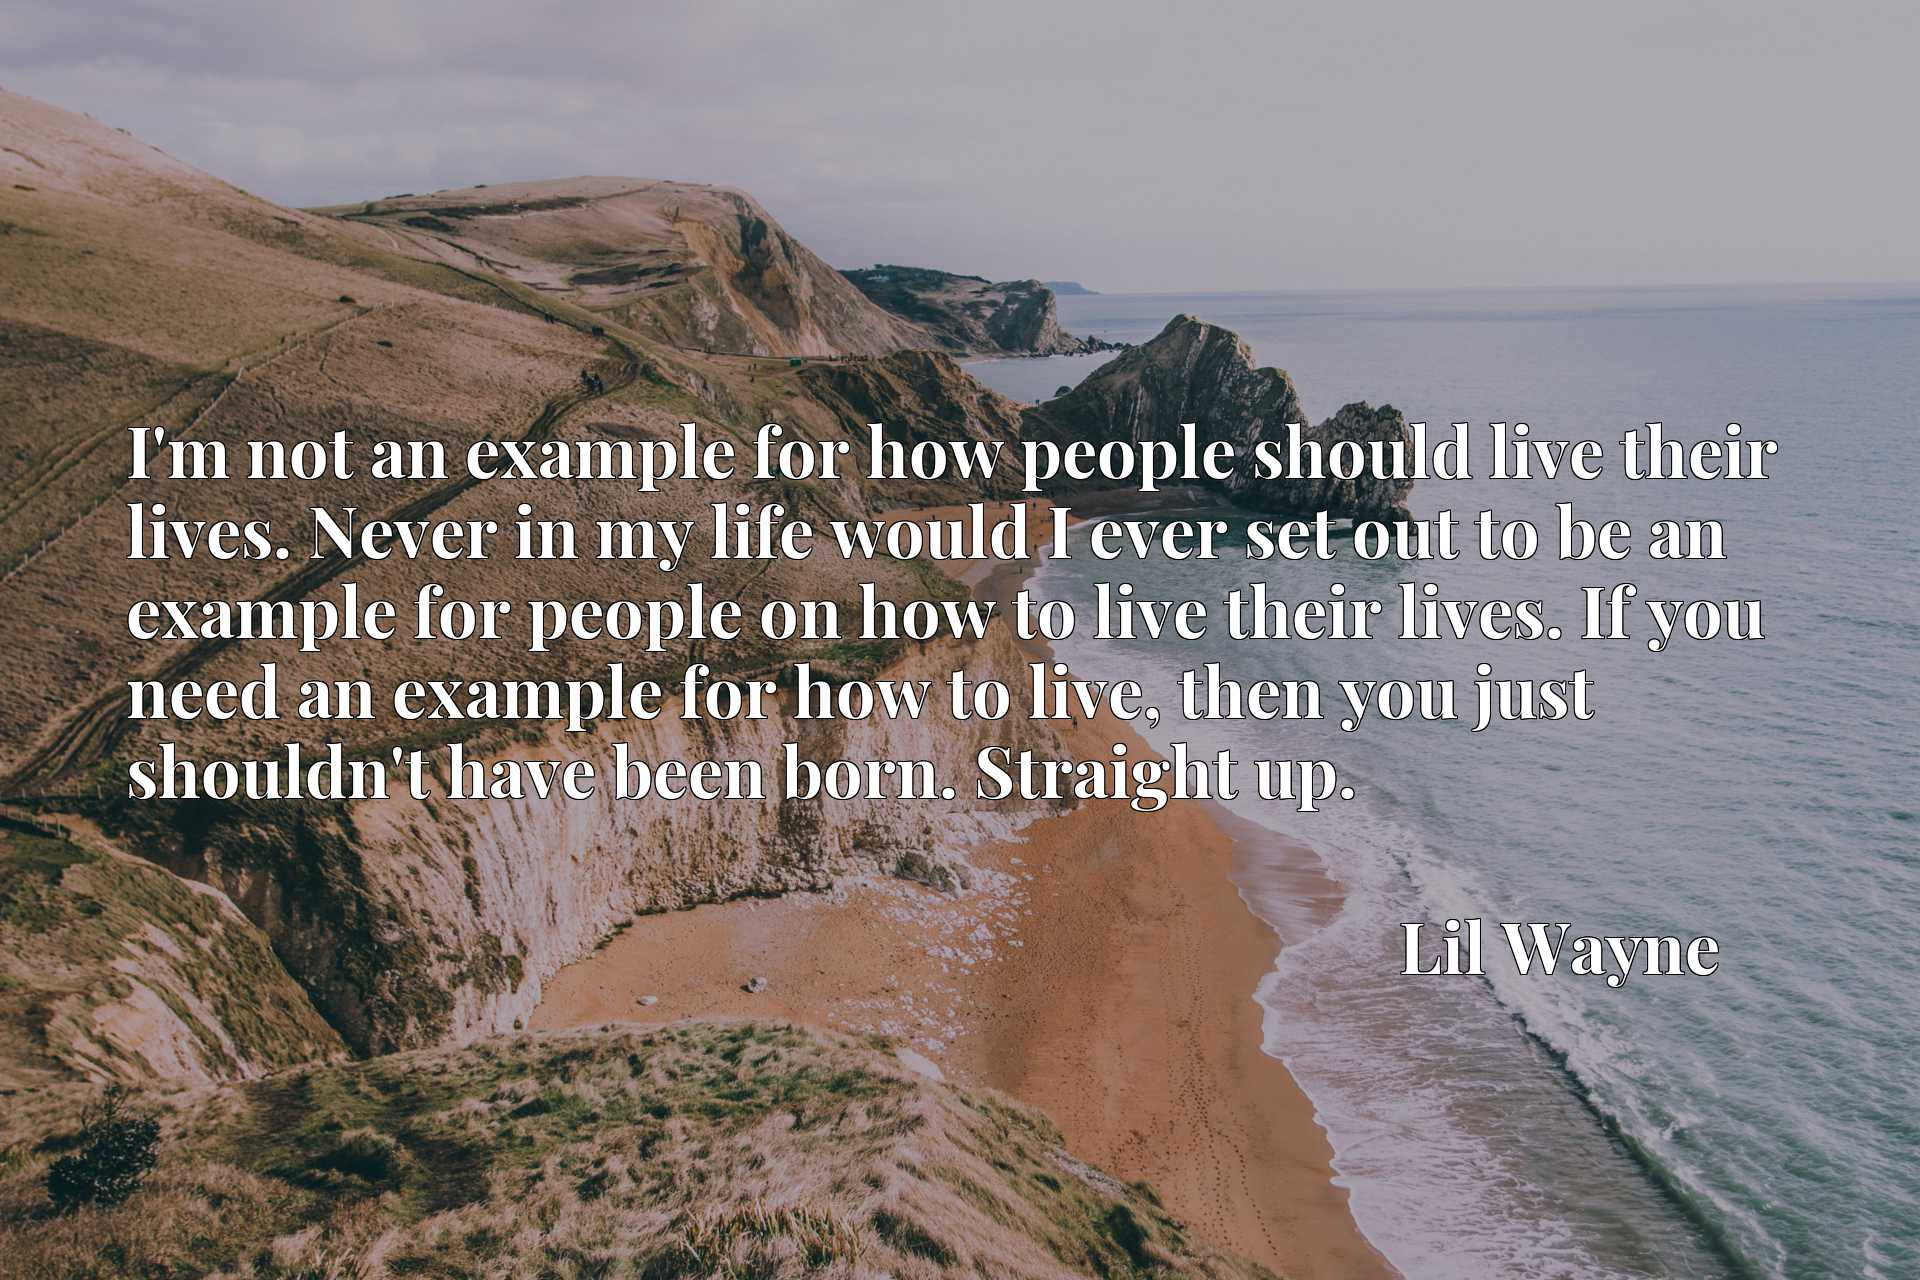 I'm not an example for how people should live their lives. Never in my life would I ever set out to be an example for people on how to live their lives. If you need an example for how to live, then you just shouldn't have been born. Straight up.